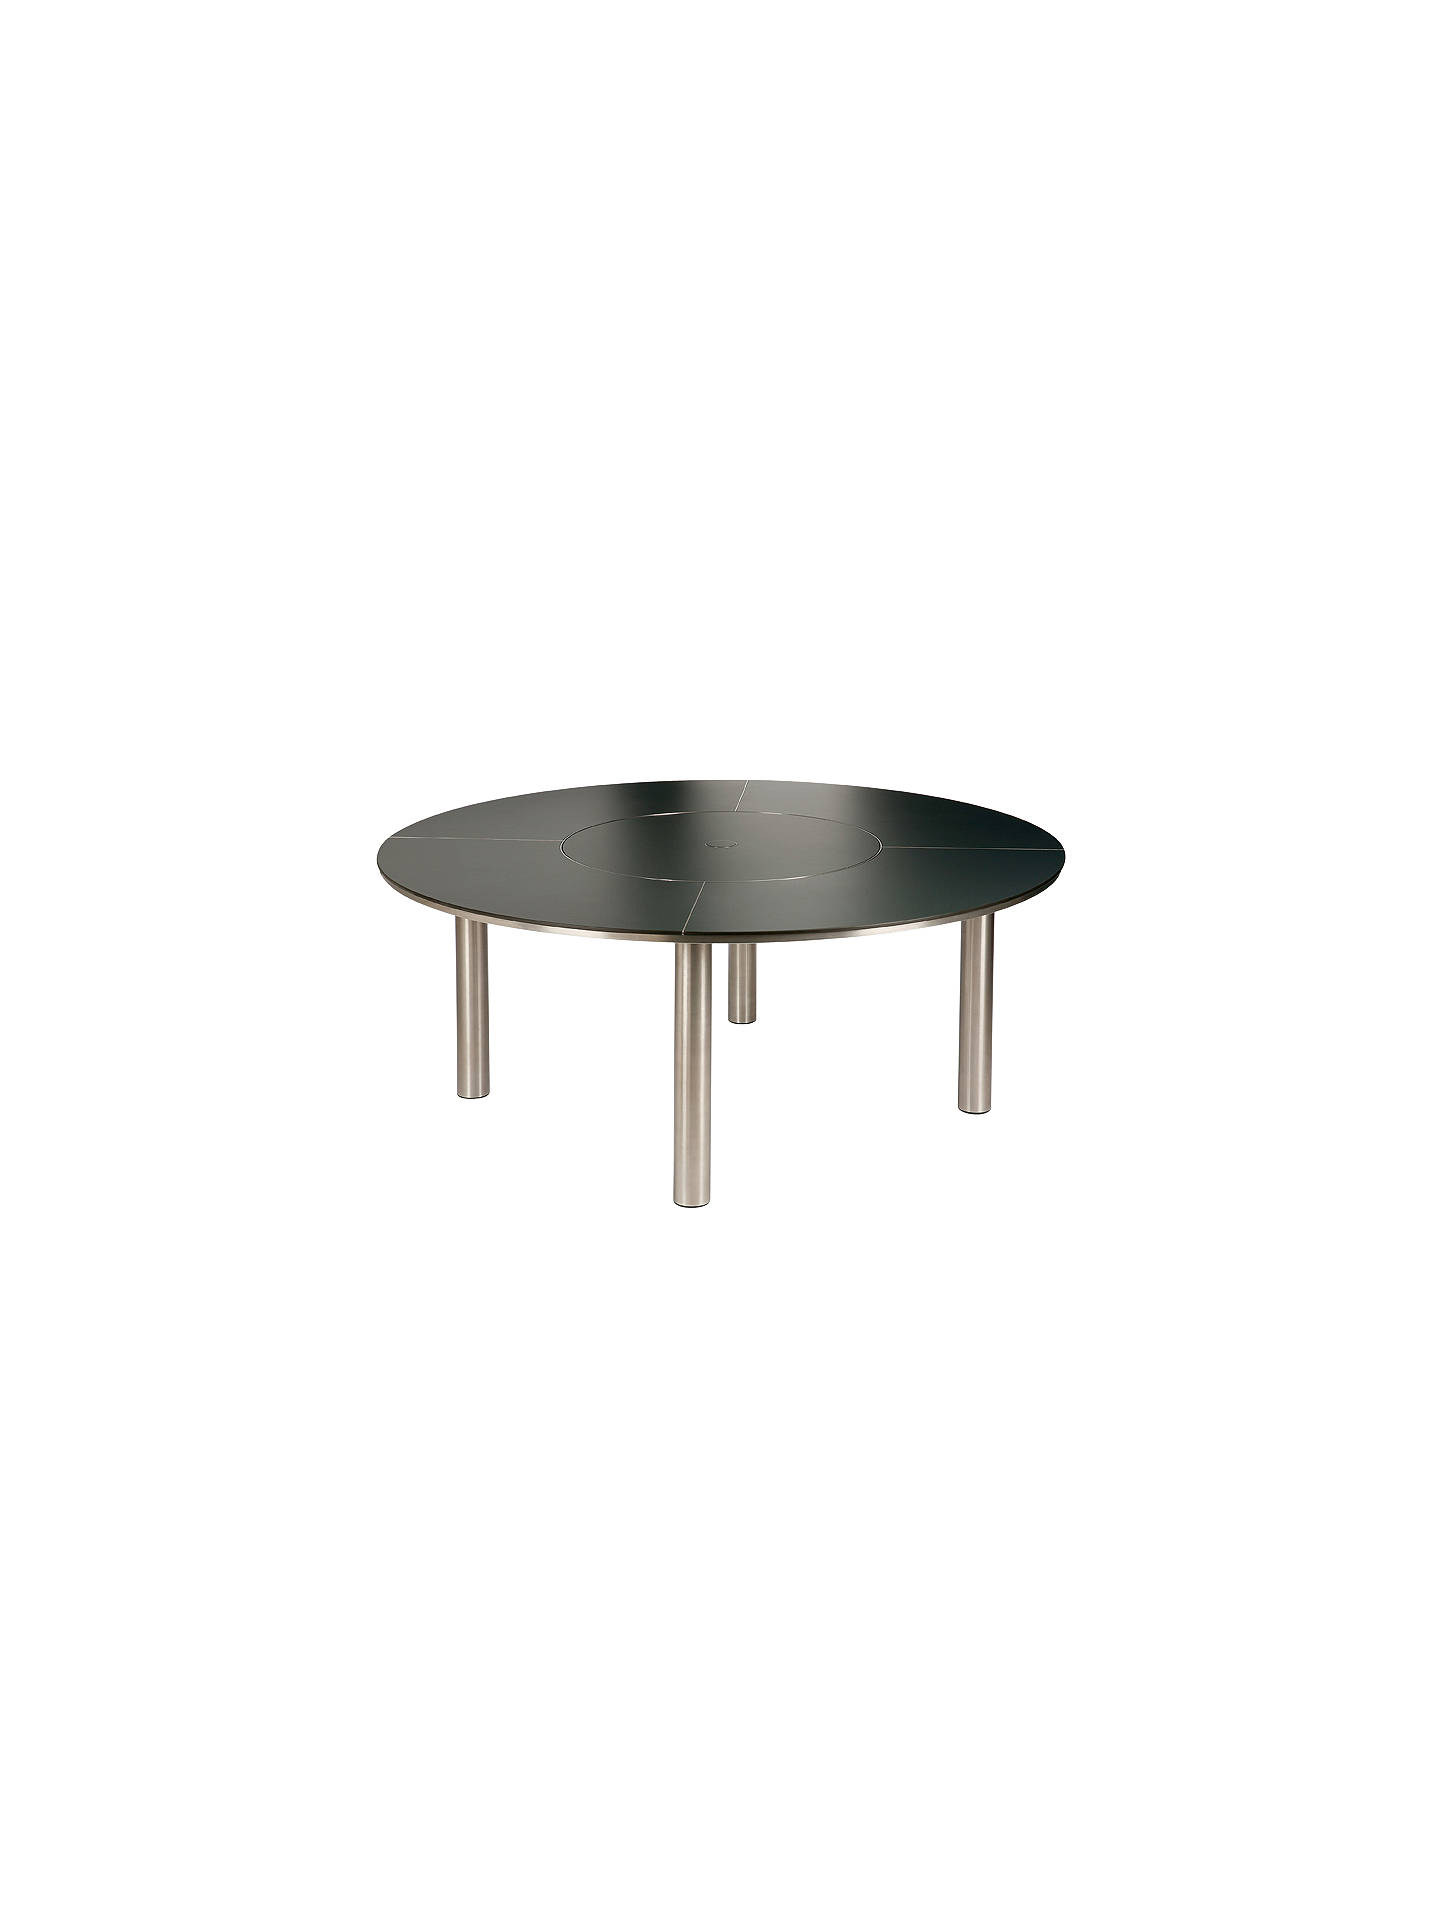 Barlow Tyrie Equinox Round 8 Seater Outdoor Dining Table With Lazy Susan Slate Grey At John Lewis Partners